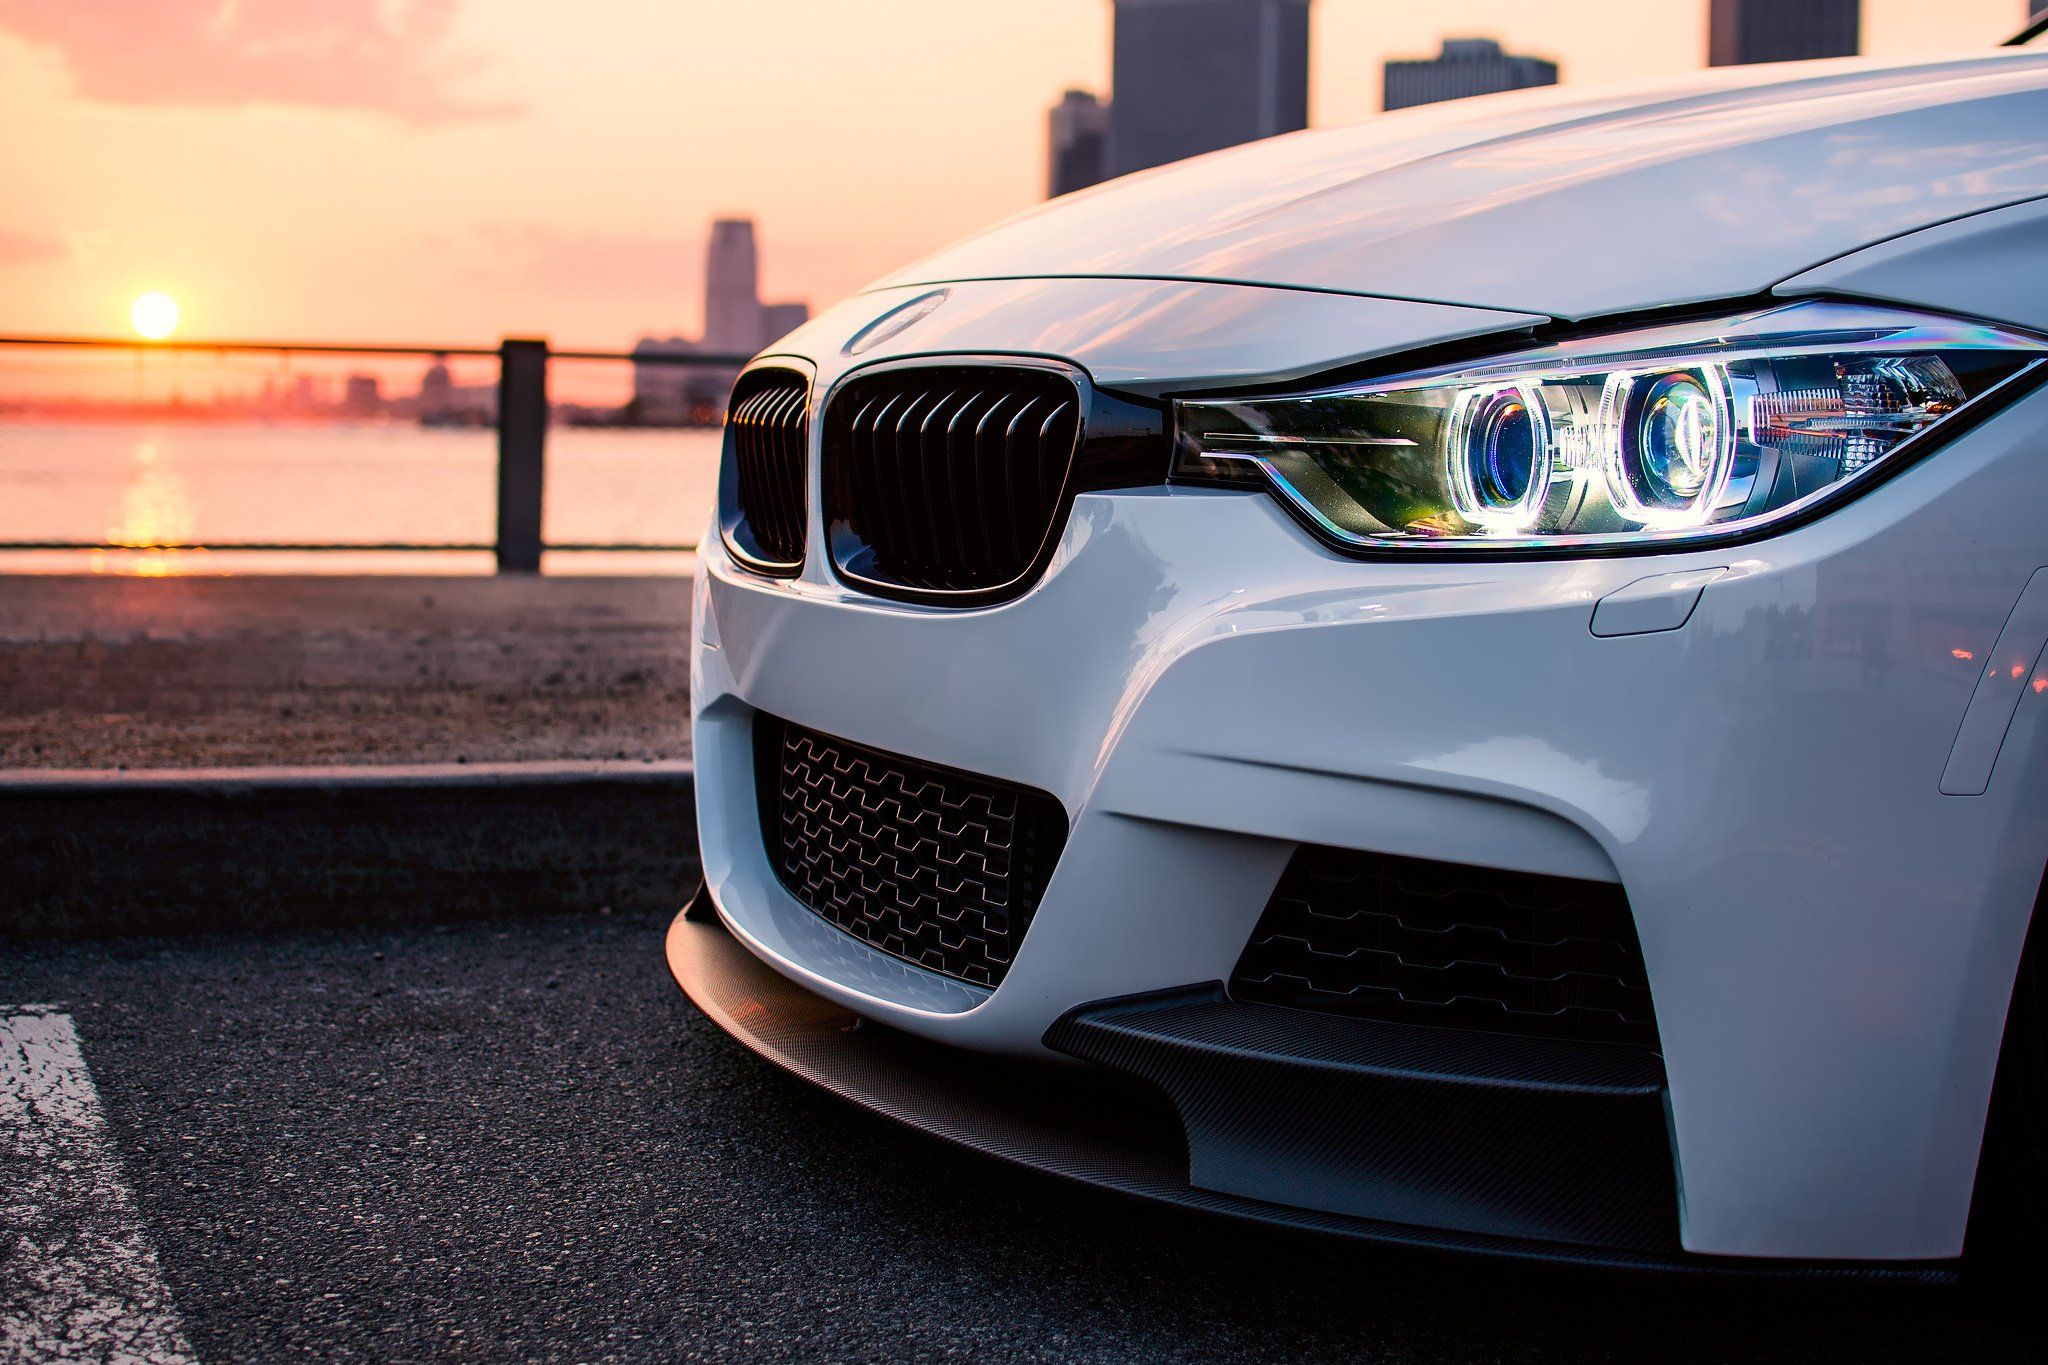 Side View Bmw F30 In 2019 Bmw Iphone Wallpaper Volkswagen